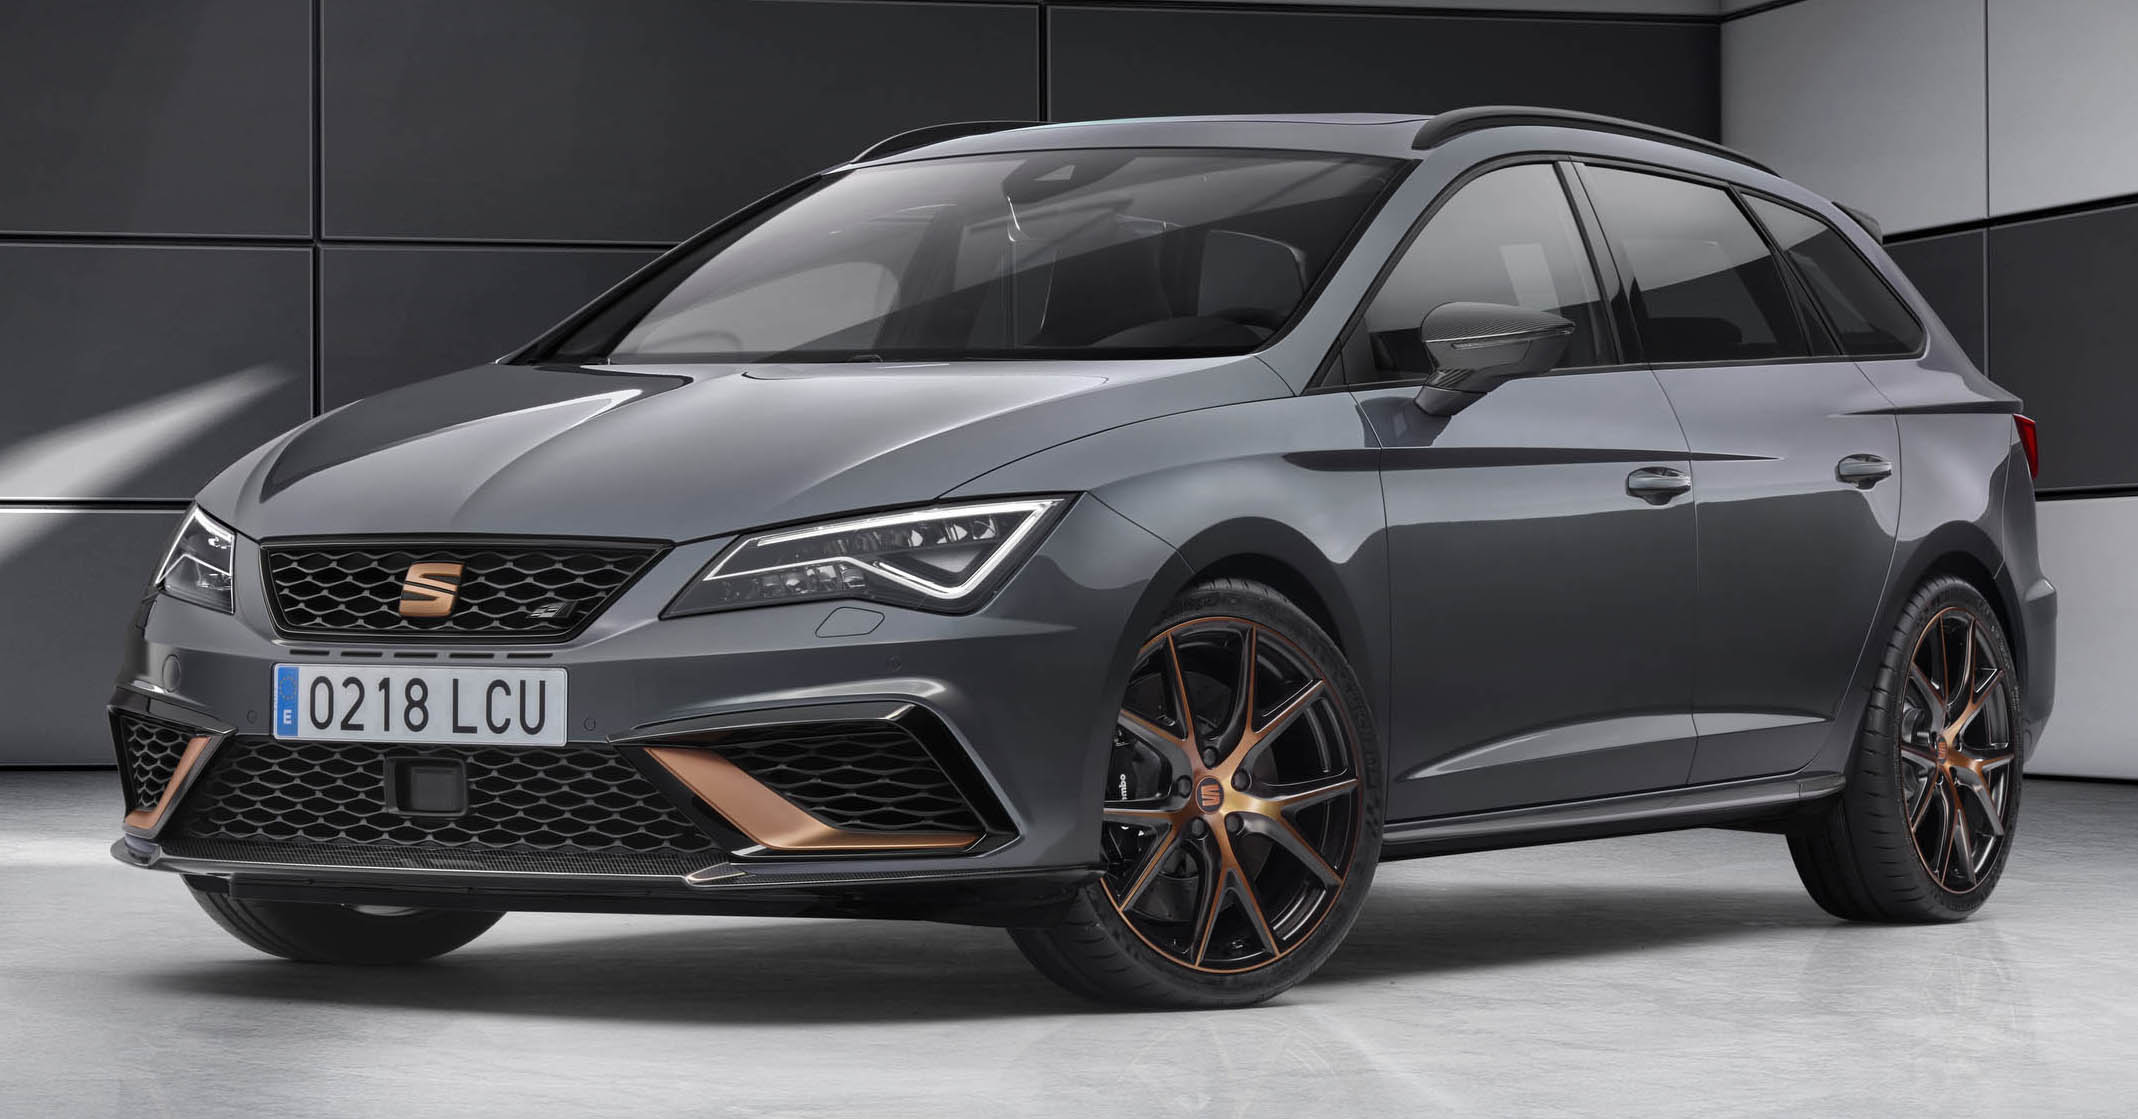 seat leon cupra r st 300 ps estate gets unveiled paul. Black Bedroom Furniture Sets. Home Design Ideas